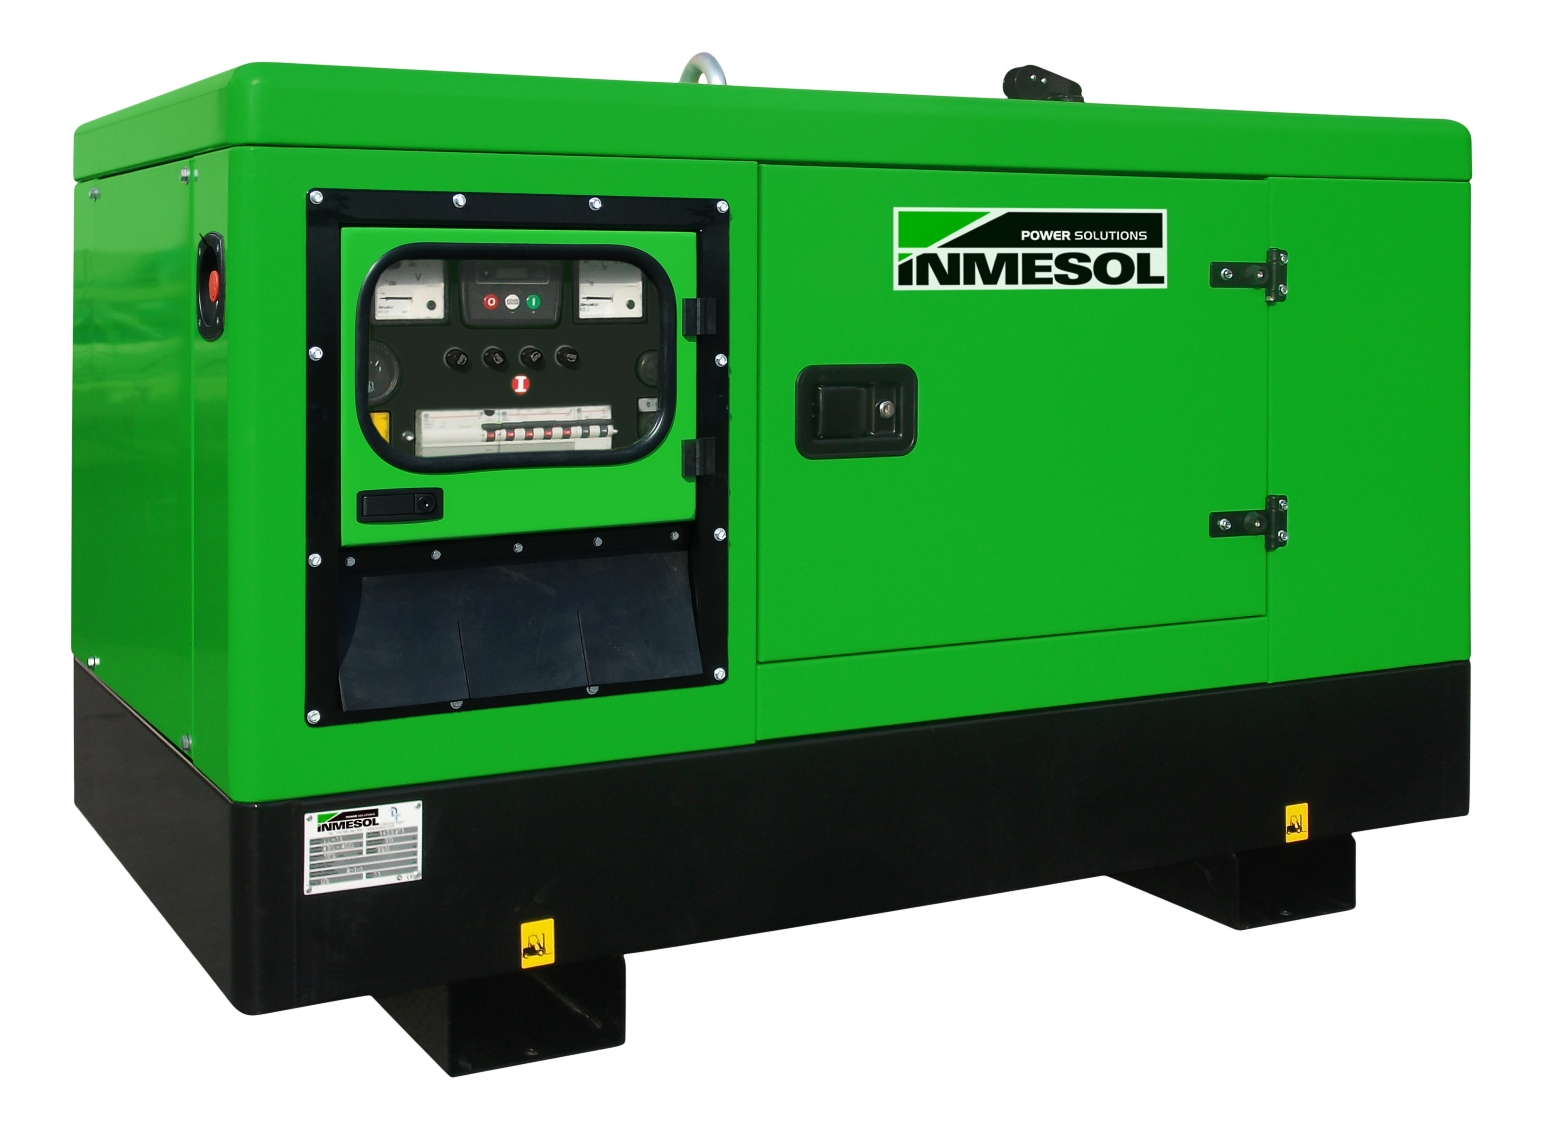 Generator with manual control panel.IL-011 - LOMBARDINI - LDW1404 - 1.500 R.P.M. | 50 Hz